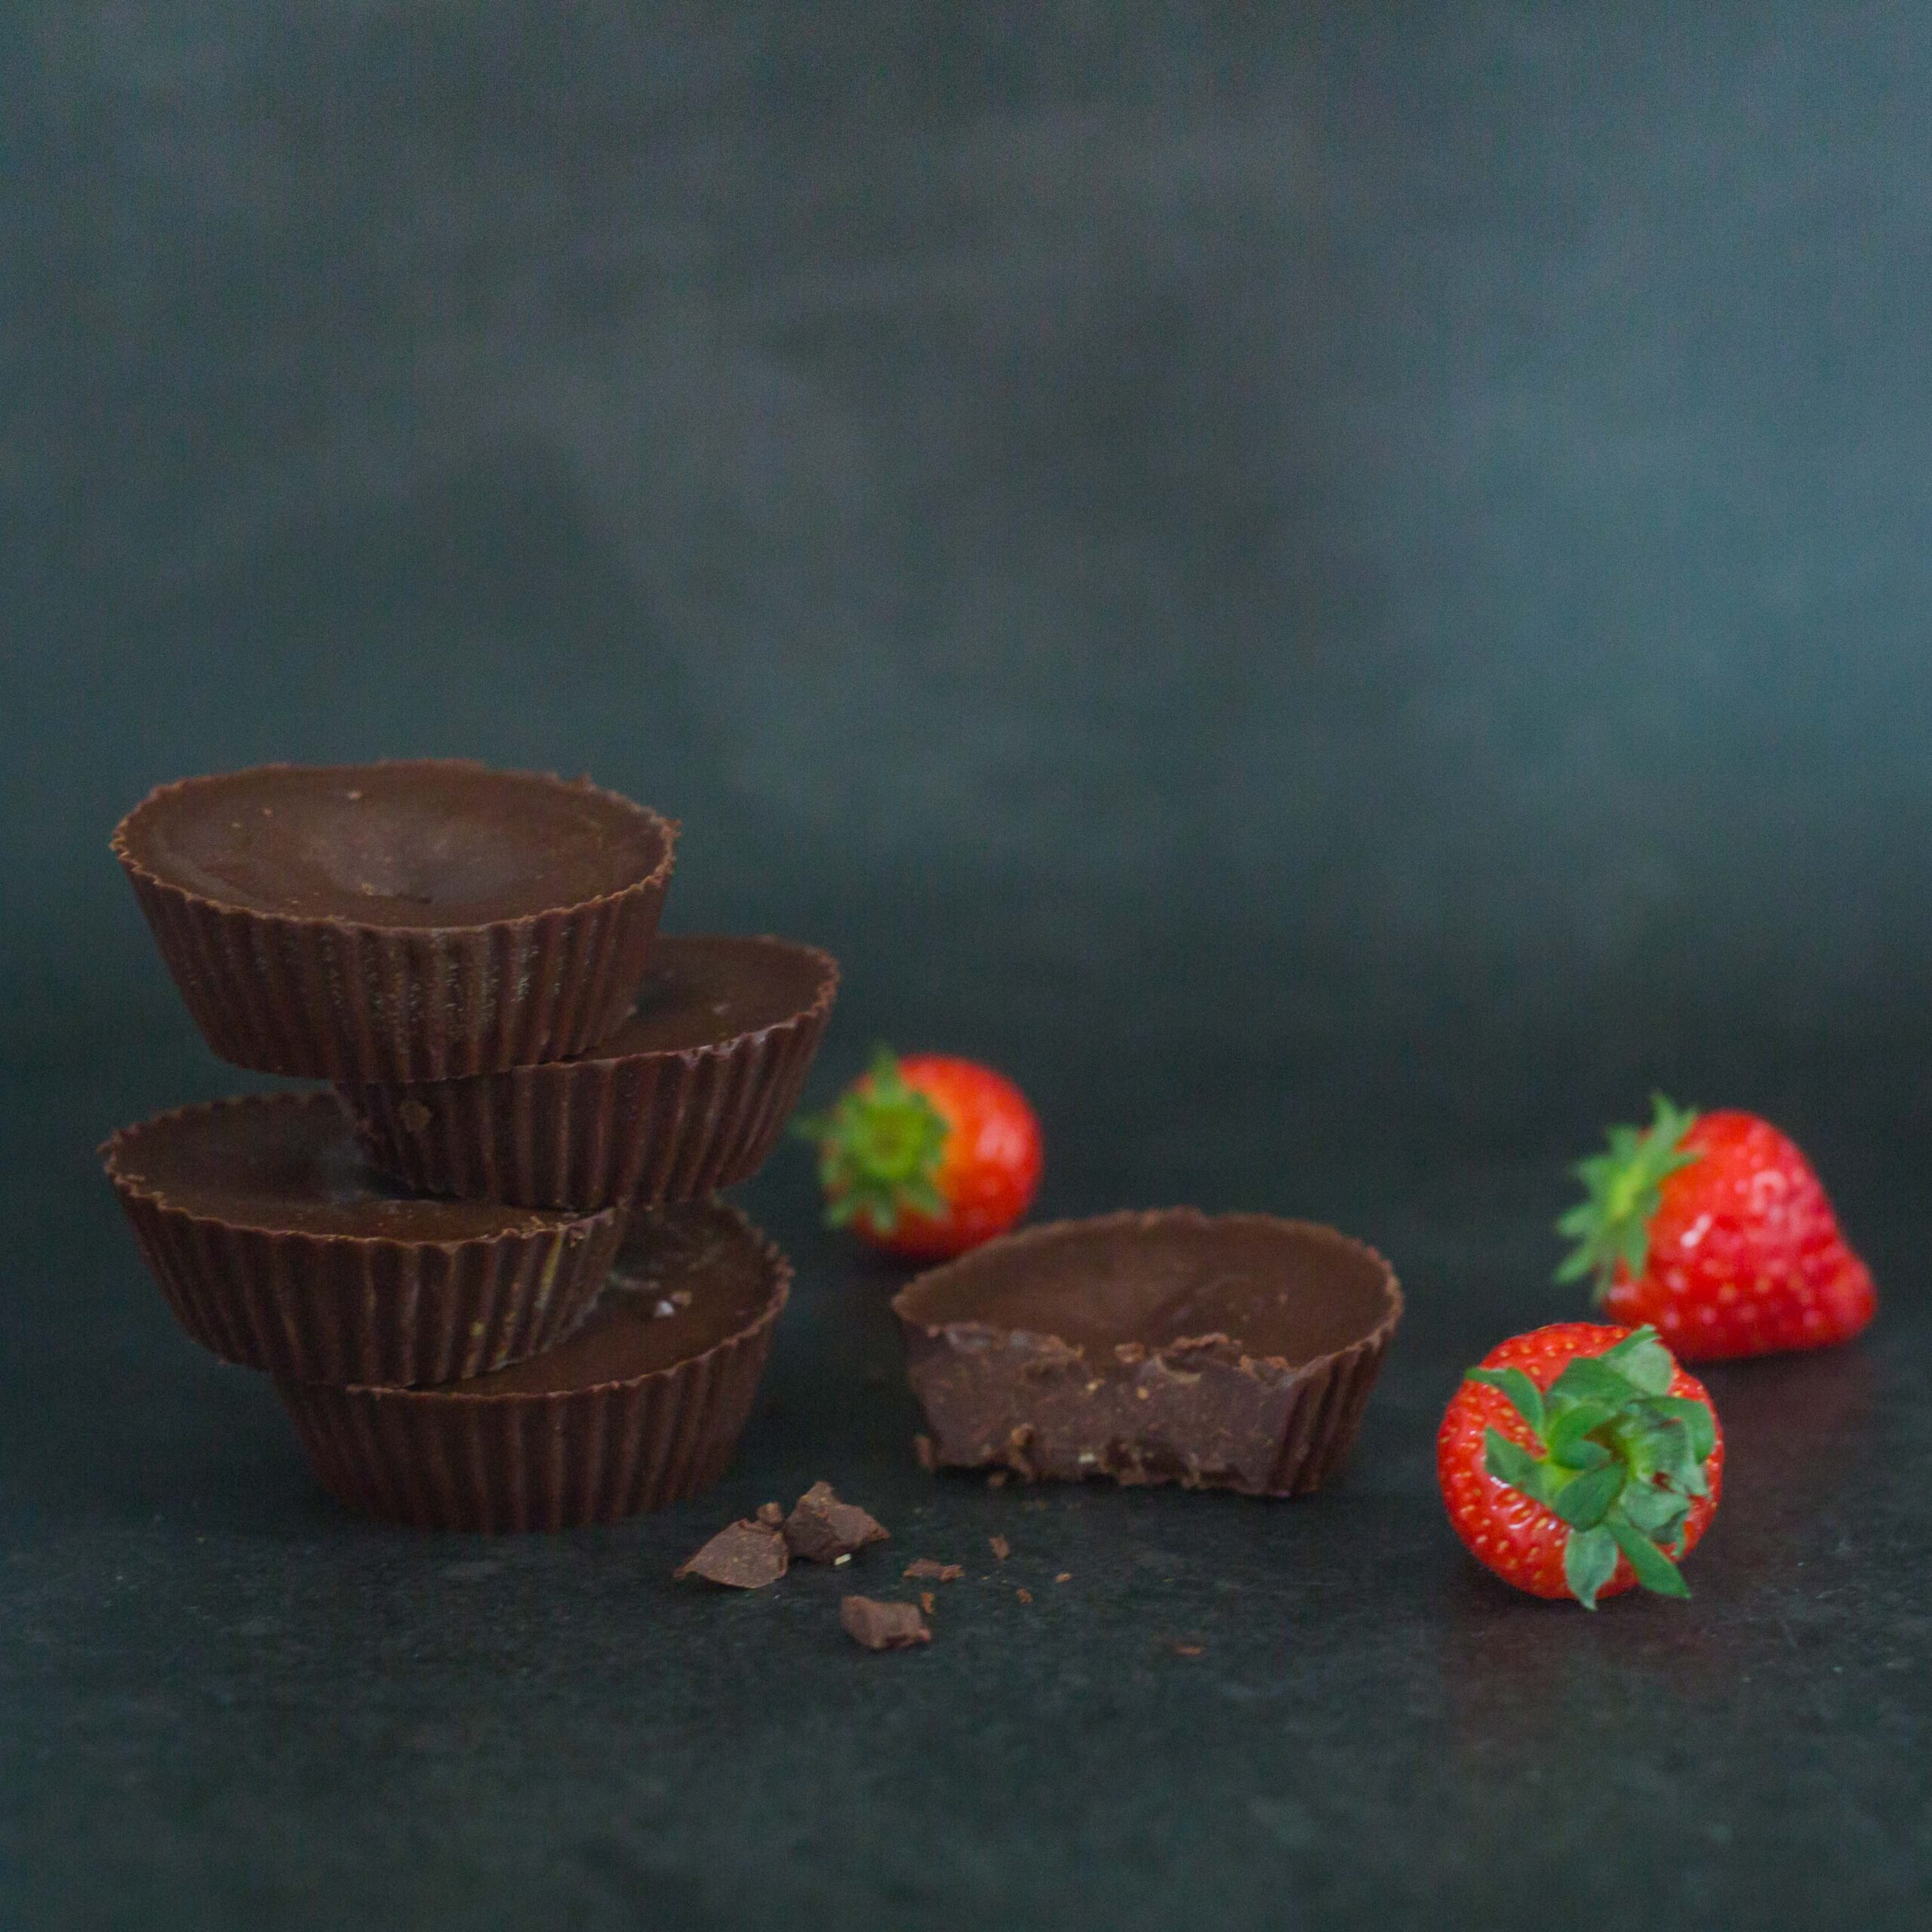 Janssen Photography - Food Stylist and Photographer - Chocolate Photograpy